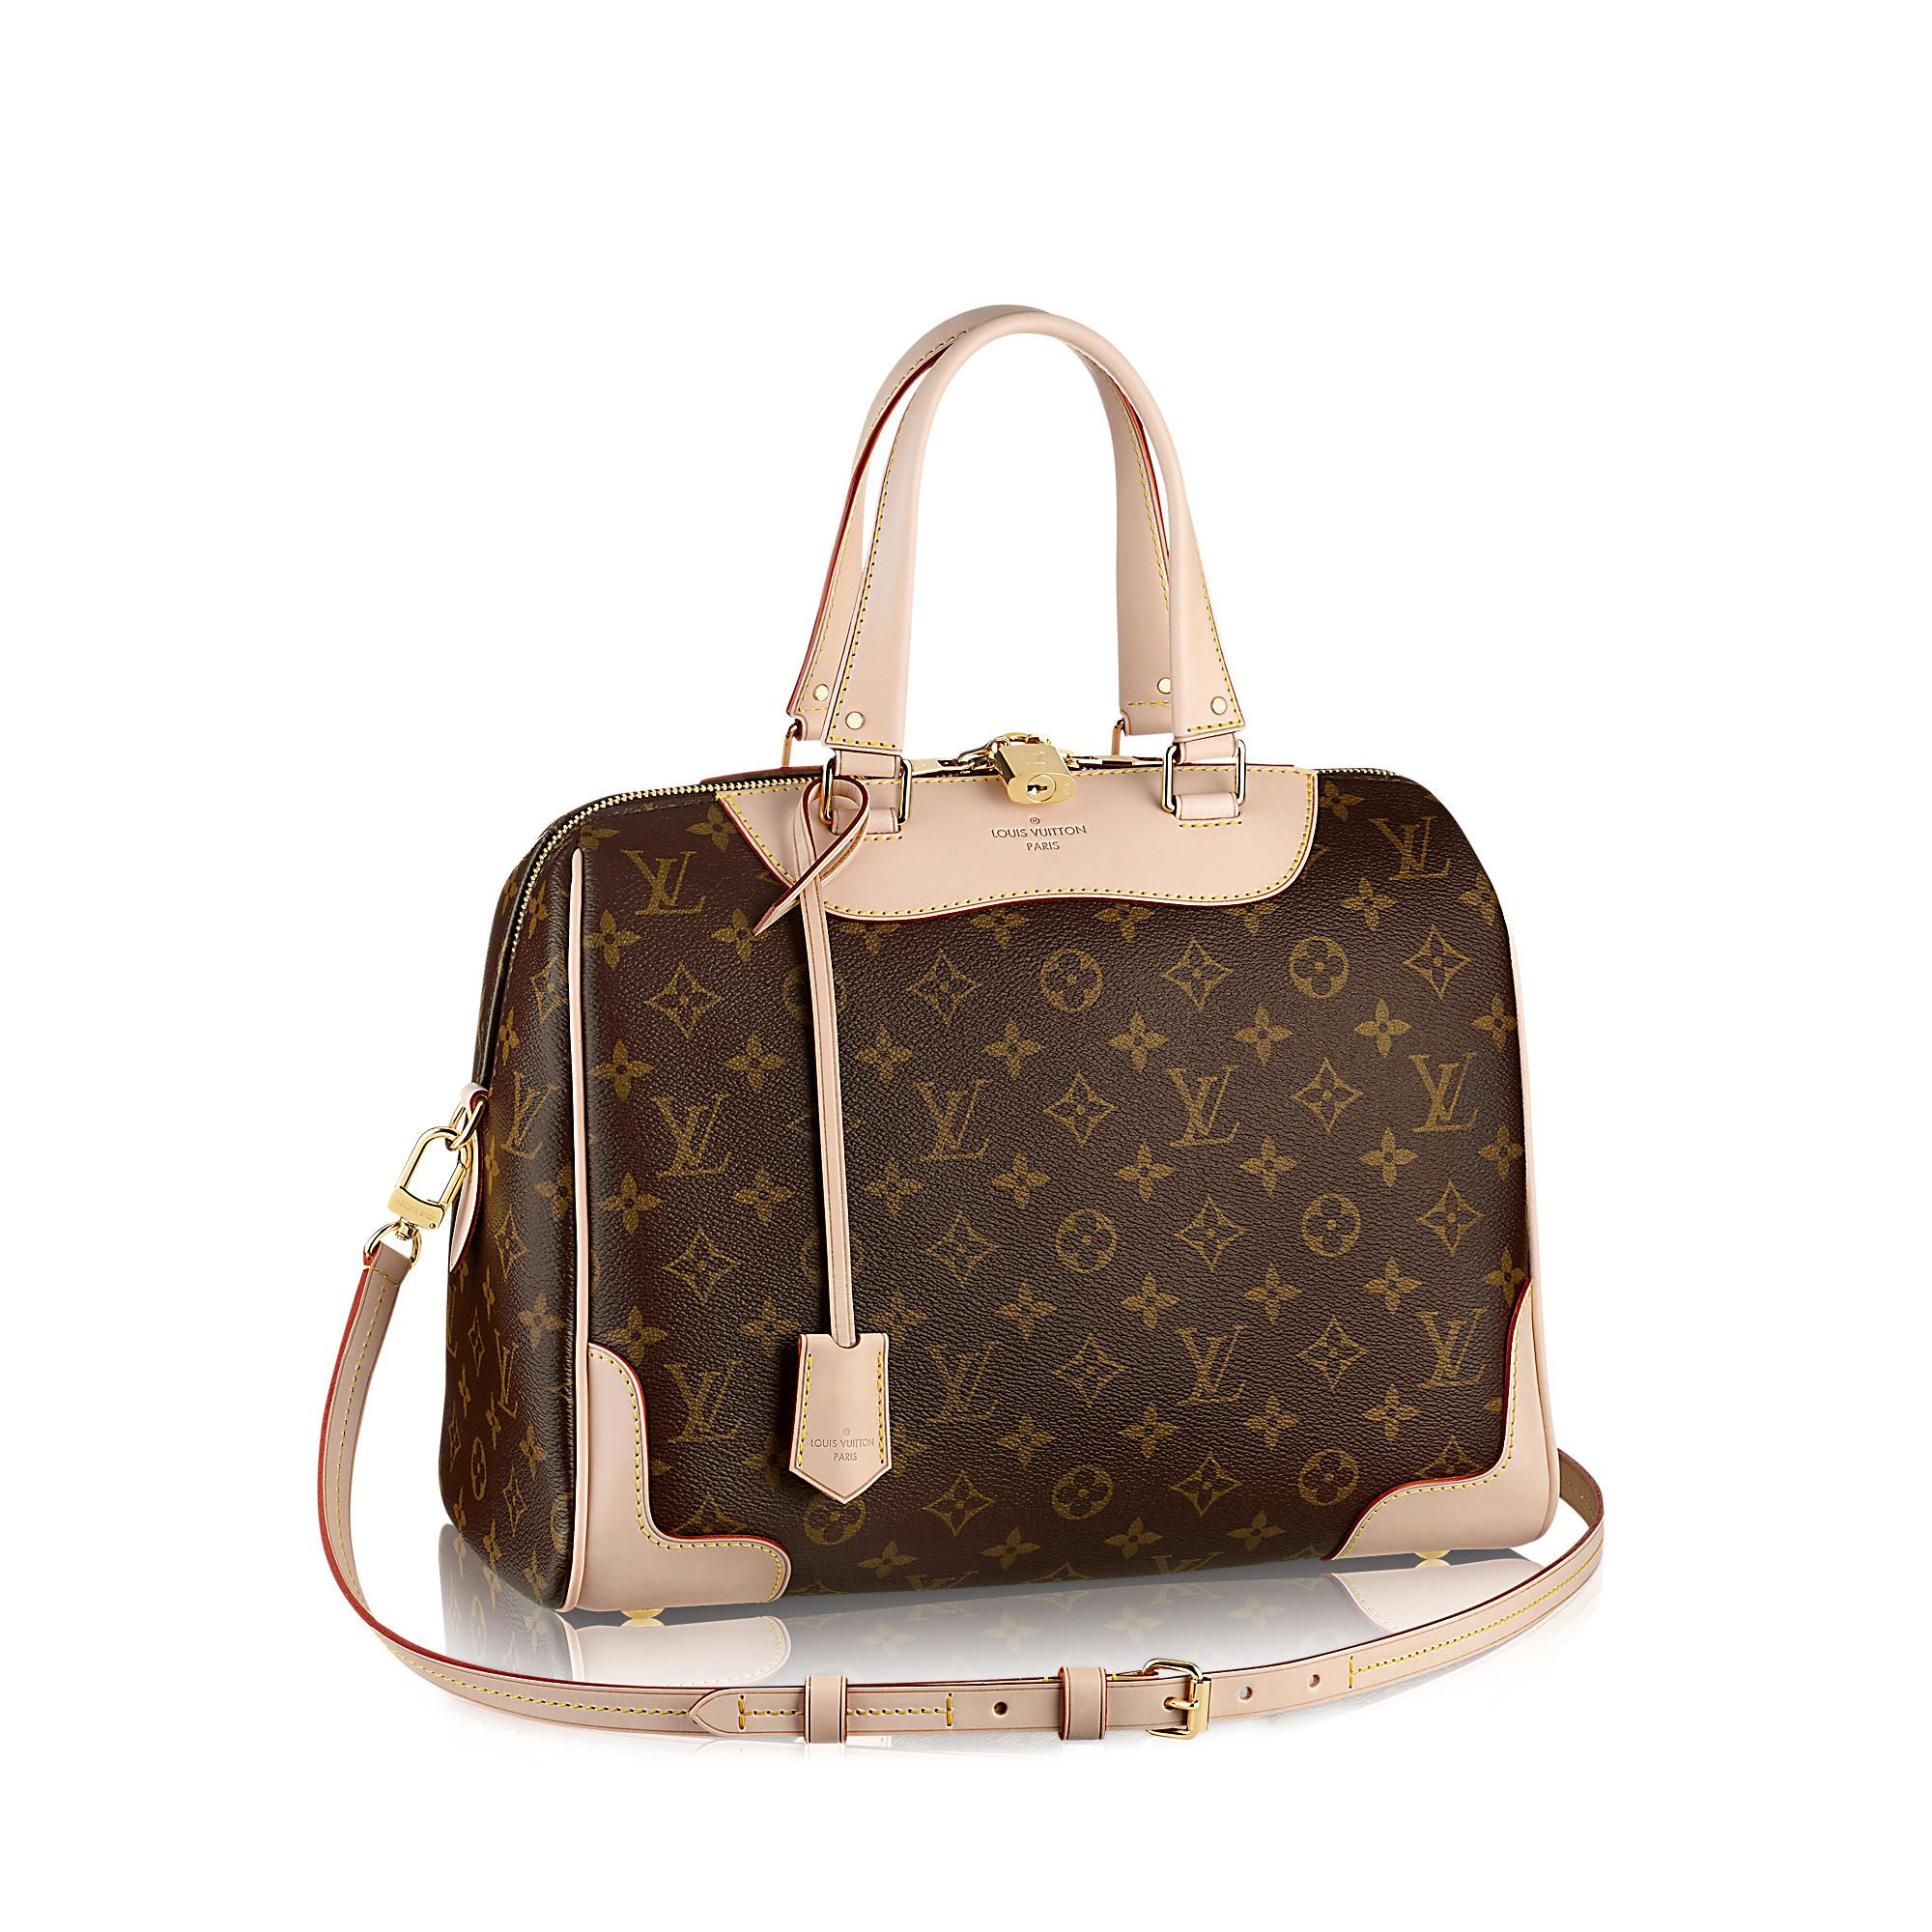 Louis Vuitton Retiro Monogram Canvas Handbags M50056 Pm2 Front View Jpg 2000 2000 Louis Vuitton Louis Vuitton Retiro Lv Handbags